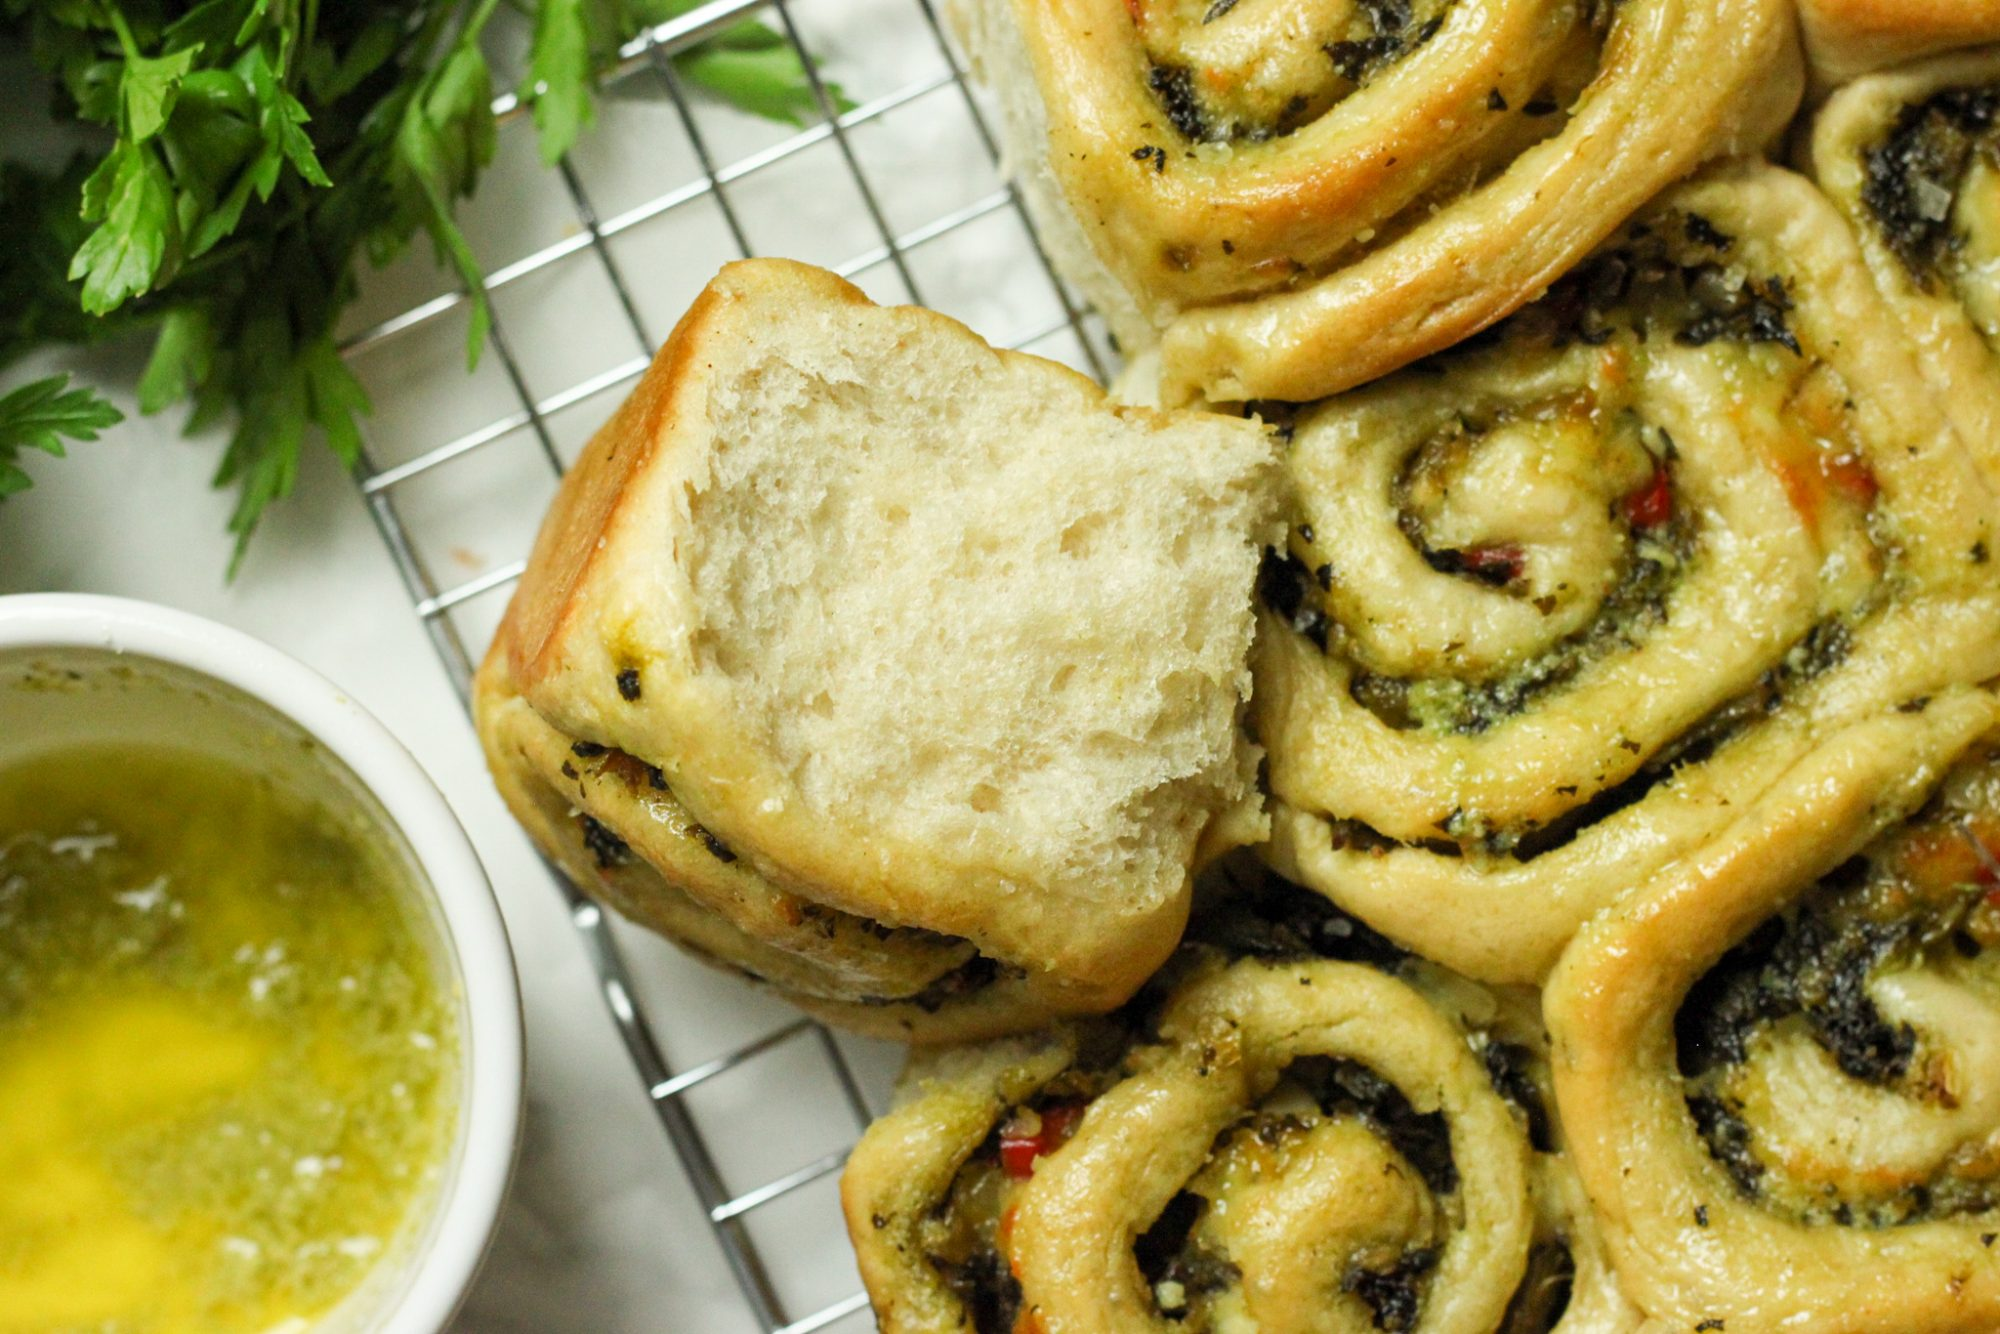 Callalou filled herby rolls